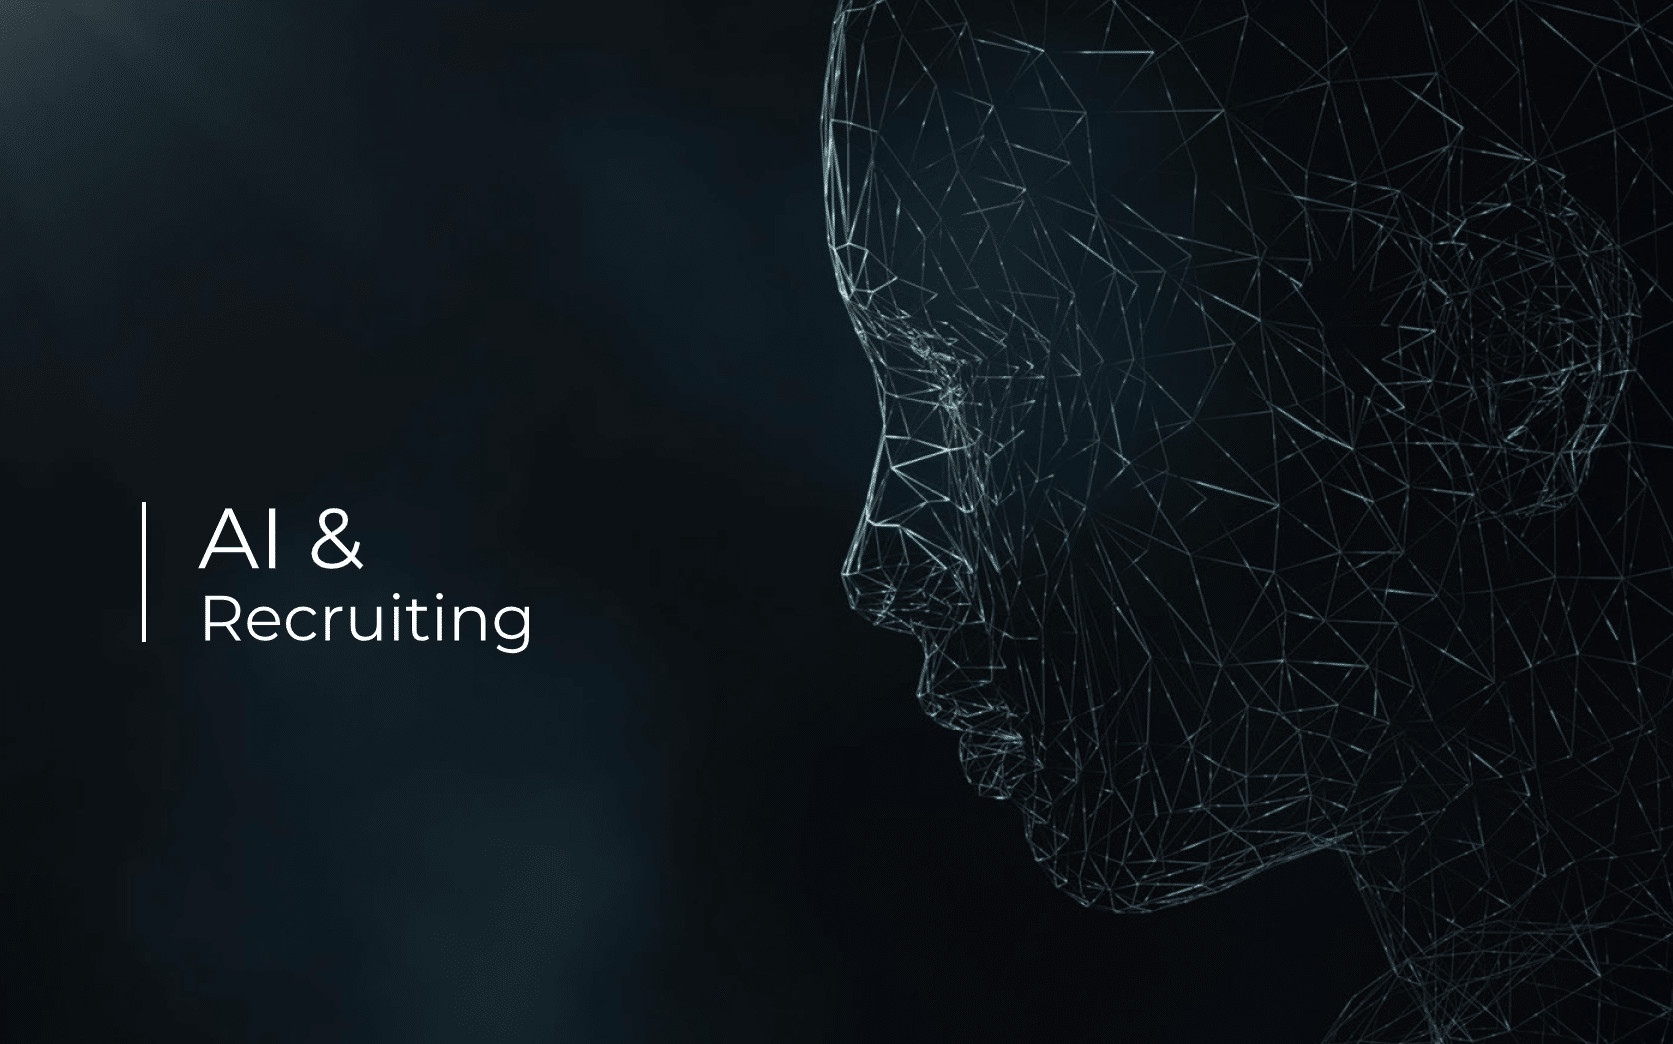 Speed up your recruitment process with assistance of an AI recruiter